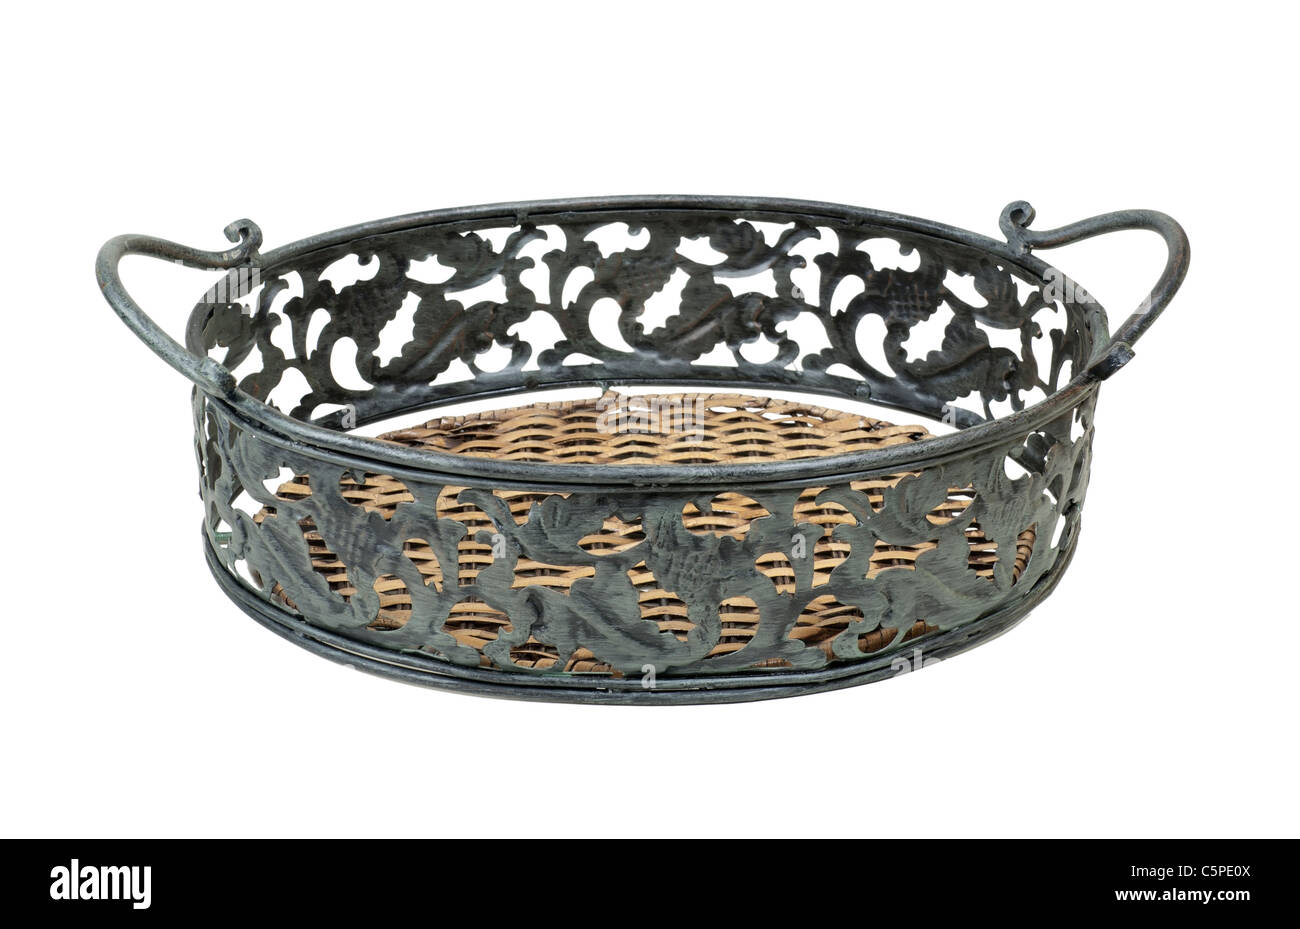 Elegant serving tray of metal leaves with wooden base - path included - Stock Image